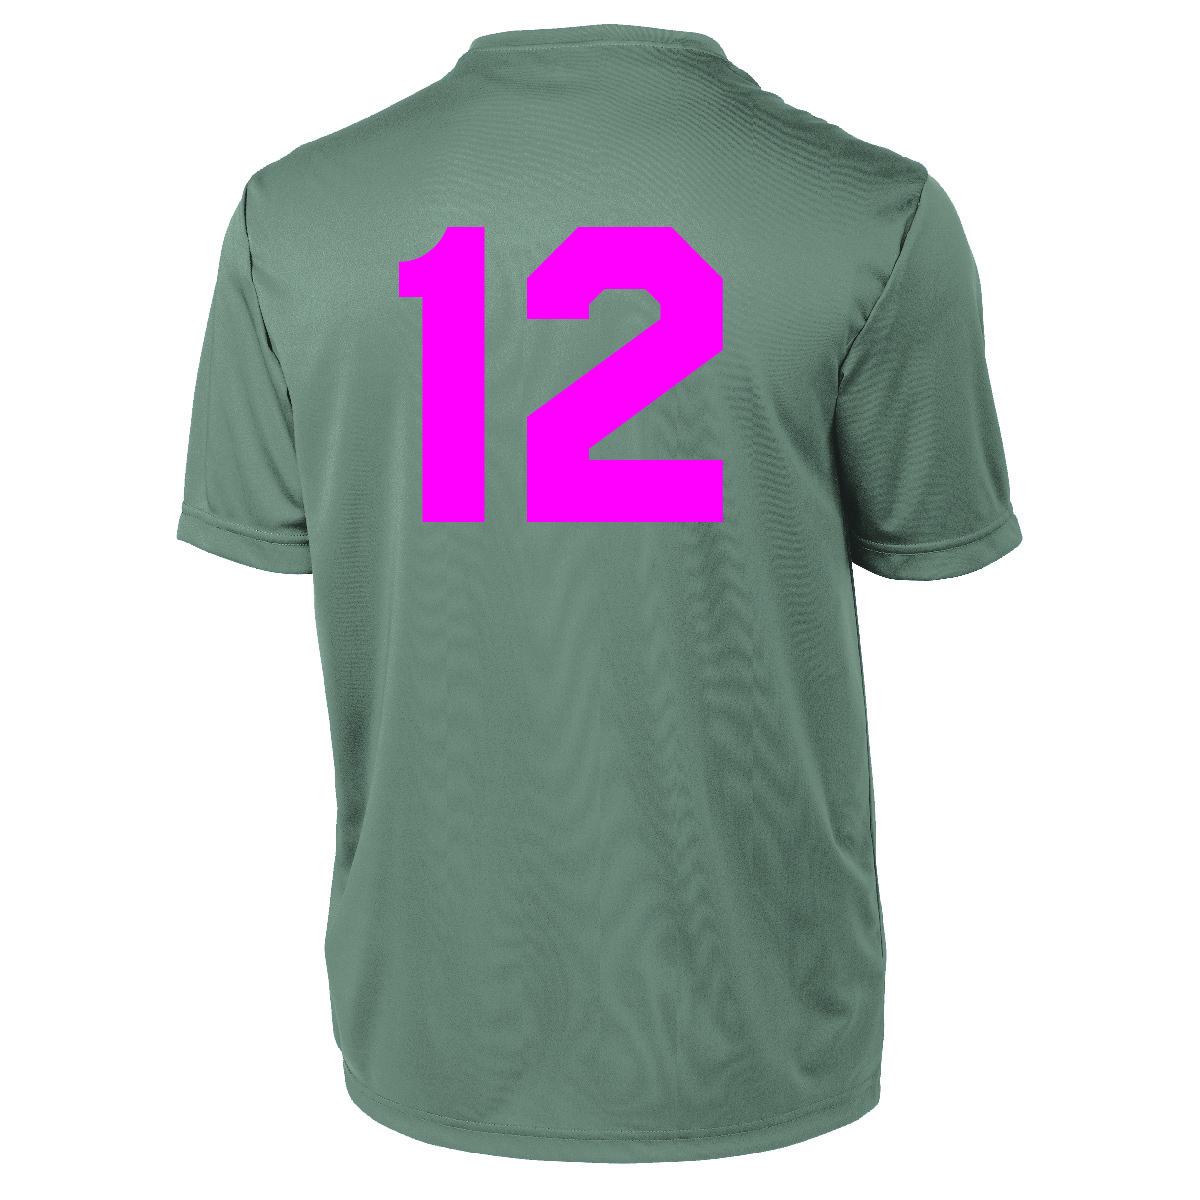 Force Training Jersey